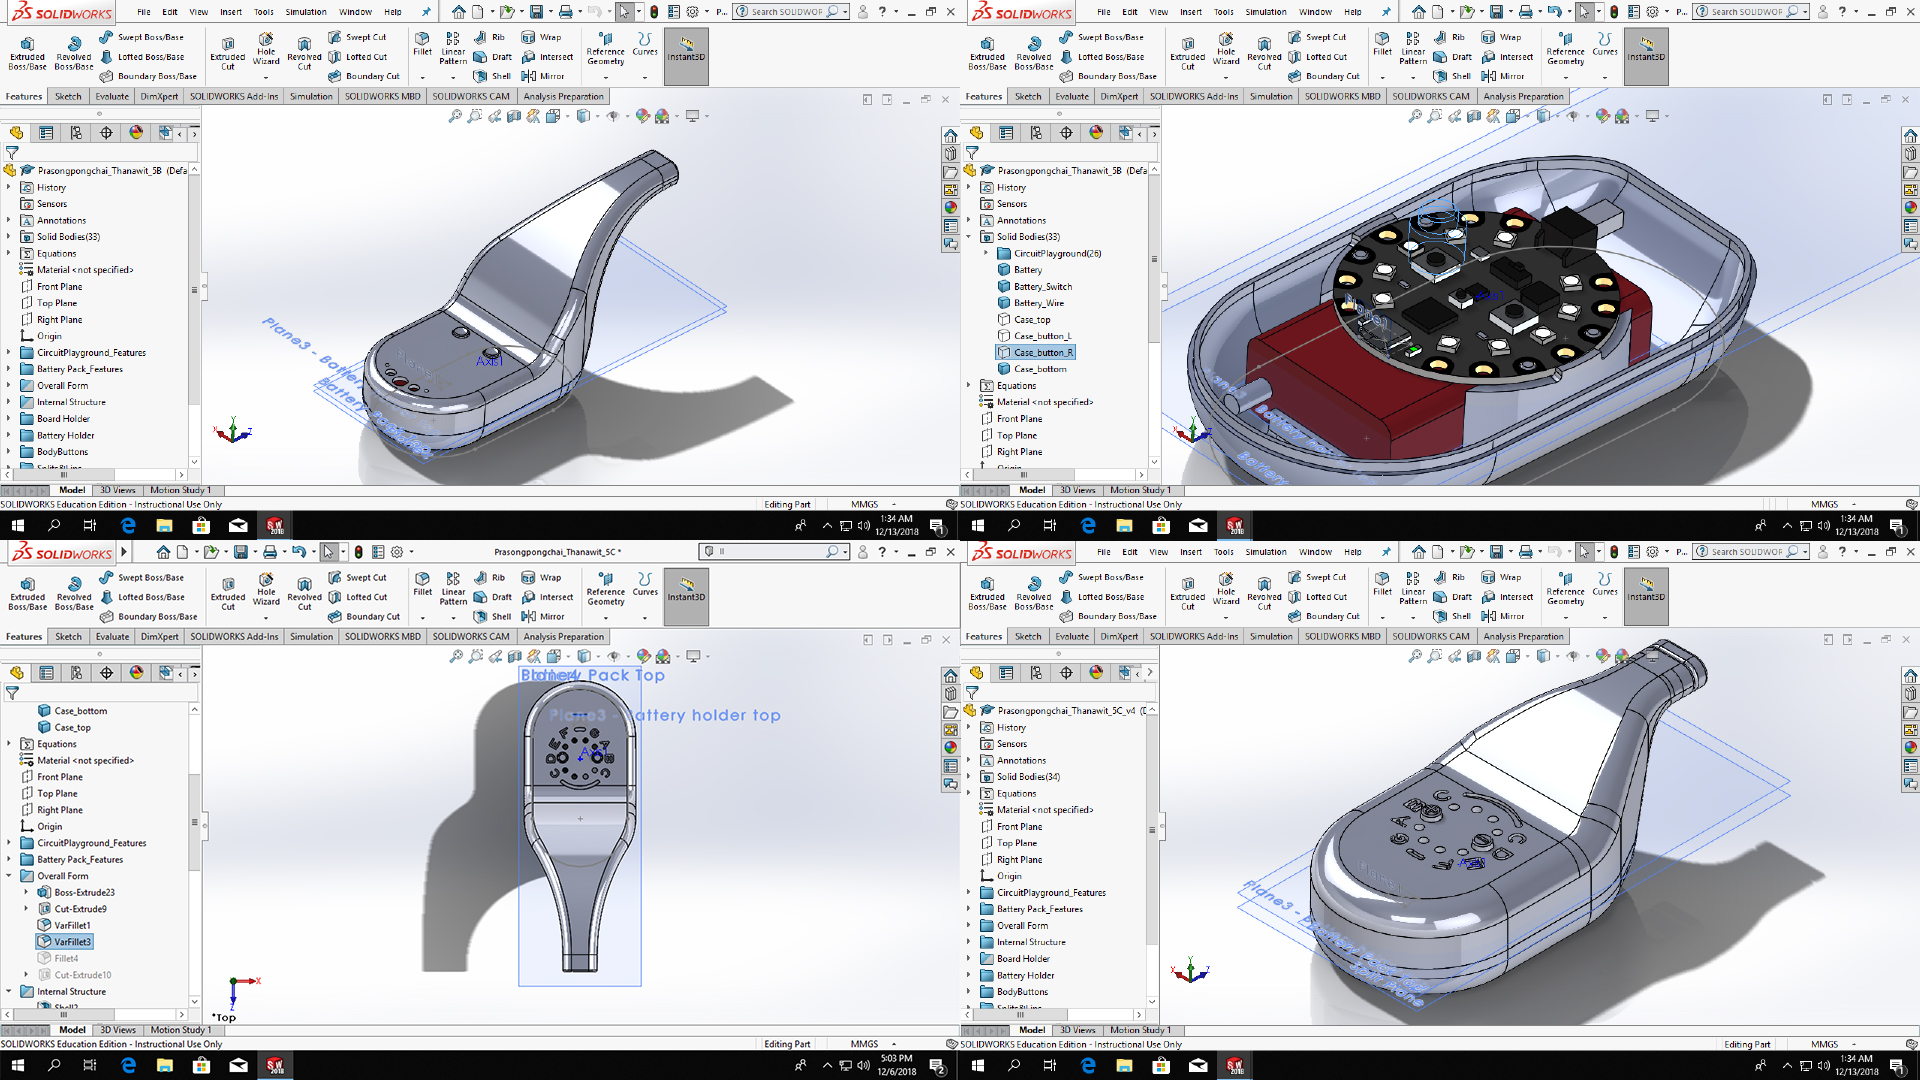 Screenshots from the 3D modeling process in SolidWorks showing multiple versions of the design